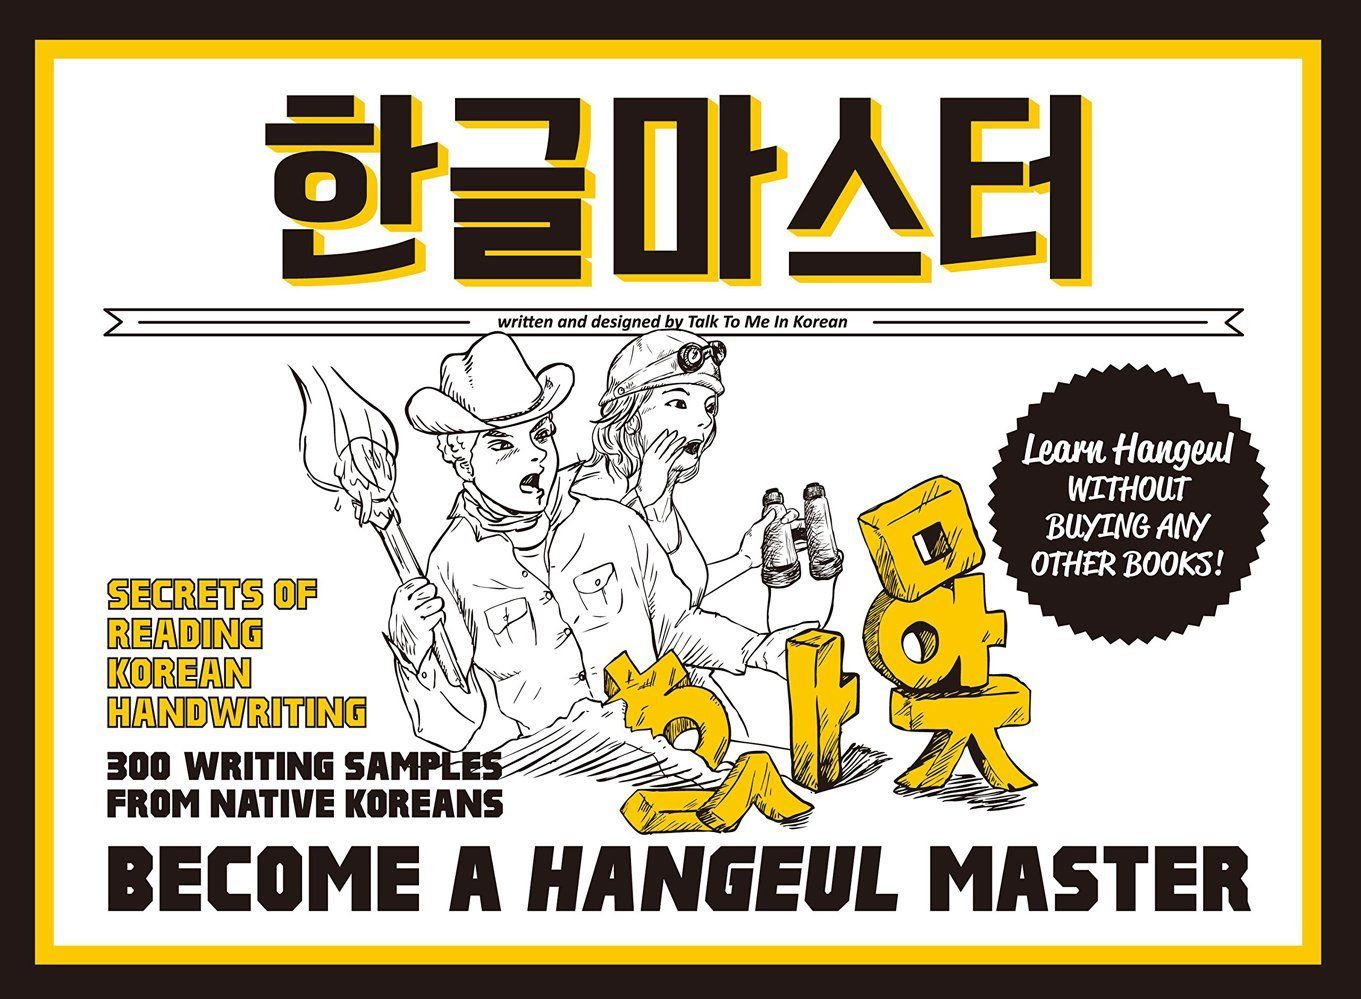 Talk to Me in Korean Hangeul Master Workbook - This book covers EVERYTHING you need to know about reading and writing in Korean. It has fun worksheets for you to complete and even teaches you some different calligraphy styles.